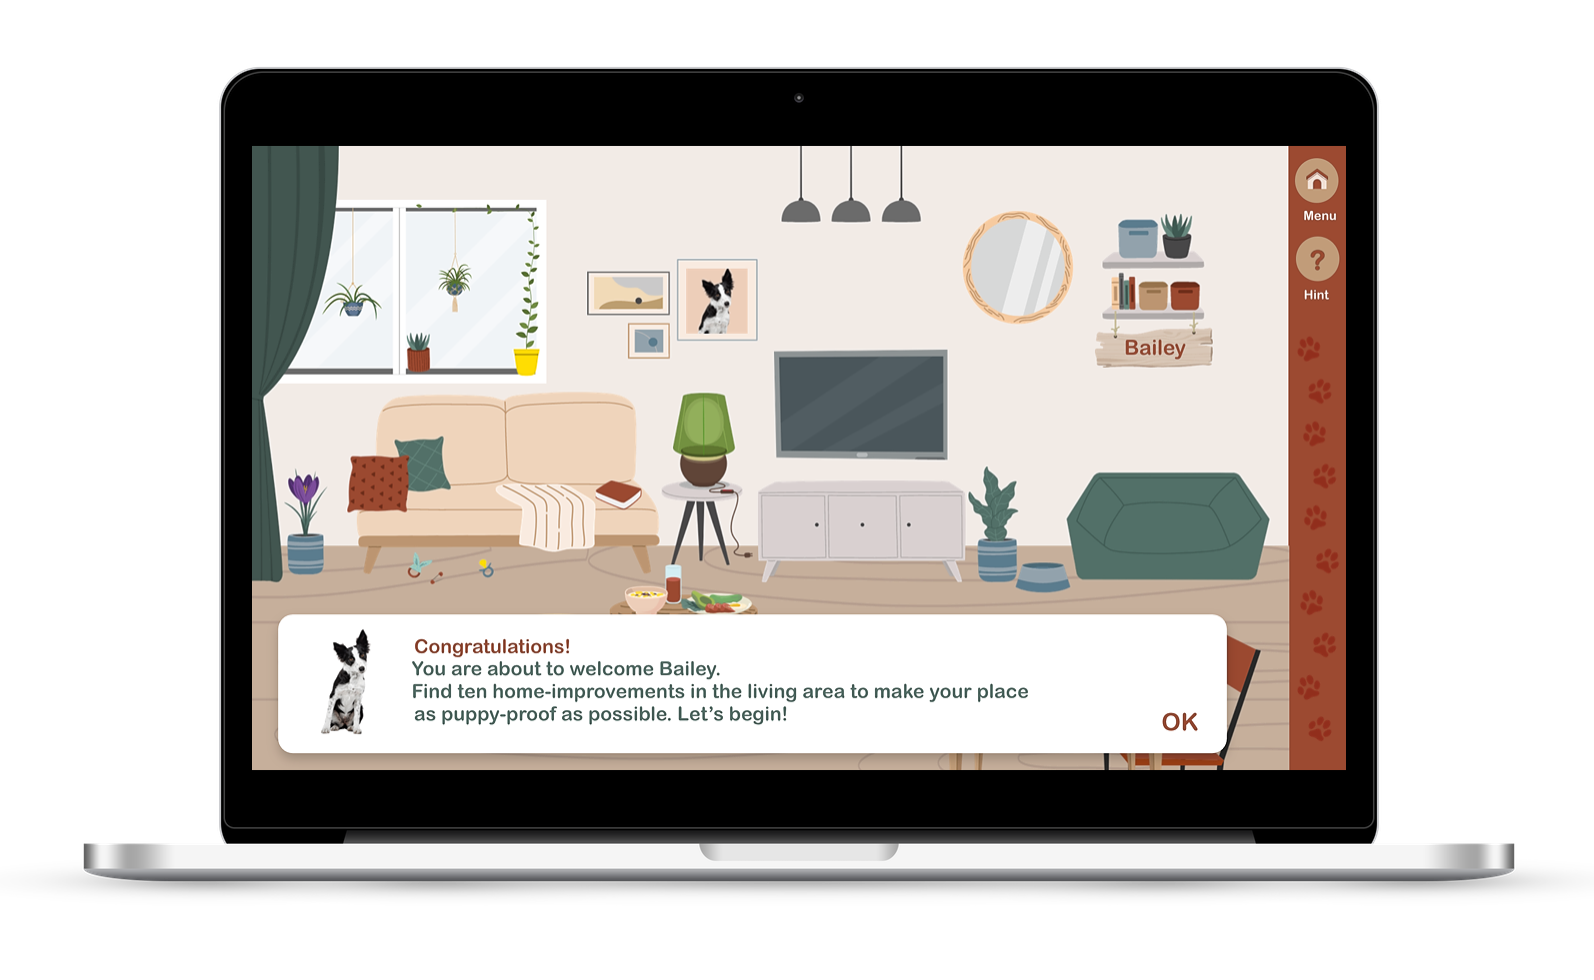 You're about to welcome a new puppy! Find 10 home improvements in this gamified elearning to make your place as puppy proof as possible!